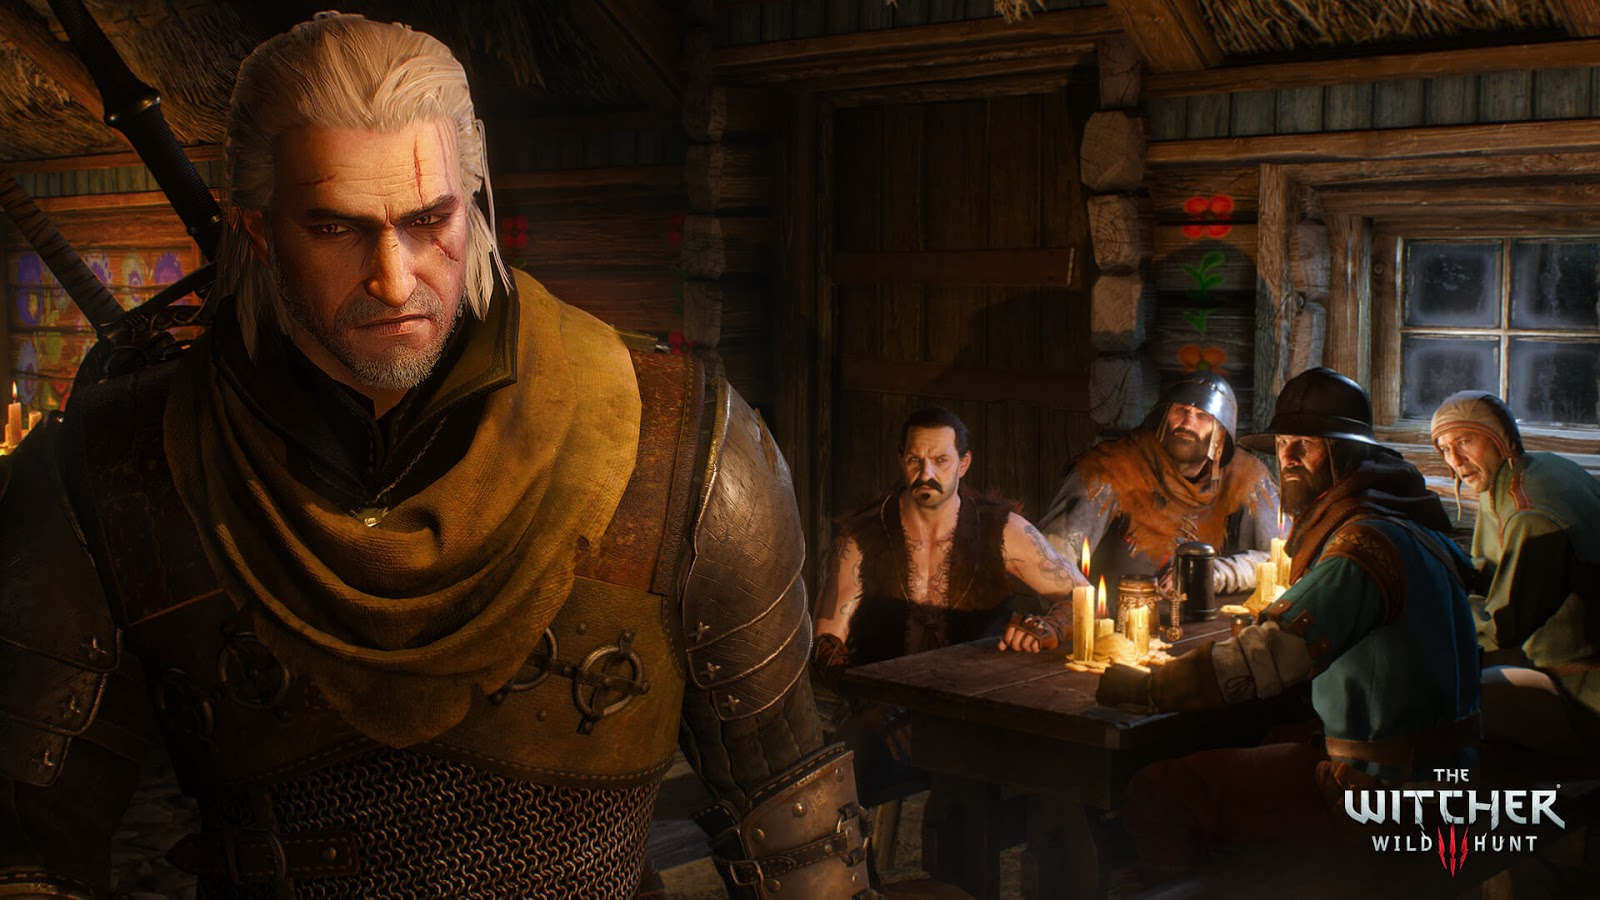 The Witcher 3 New Update Patch 1.32 Adds Simplified Chinese Support